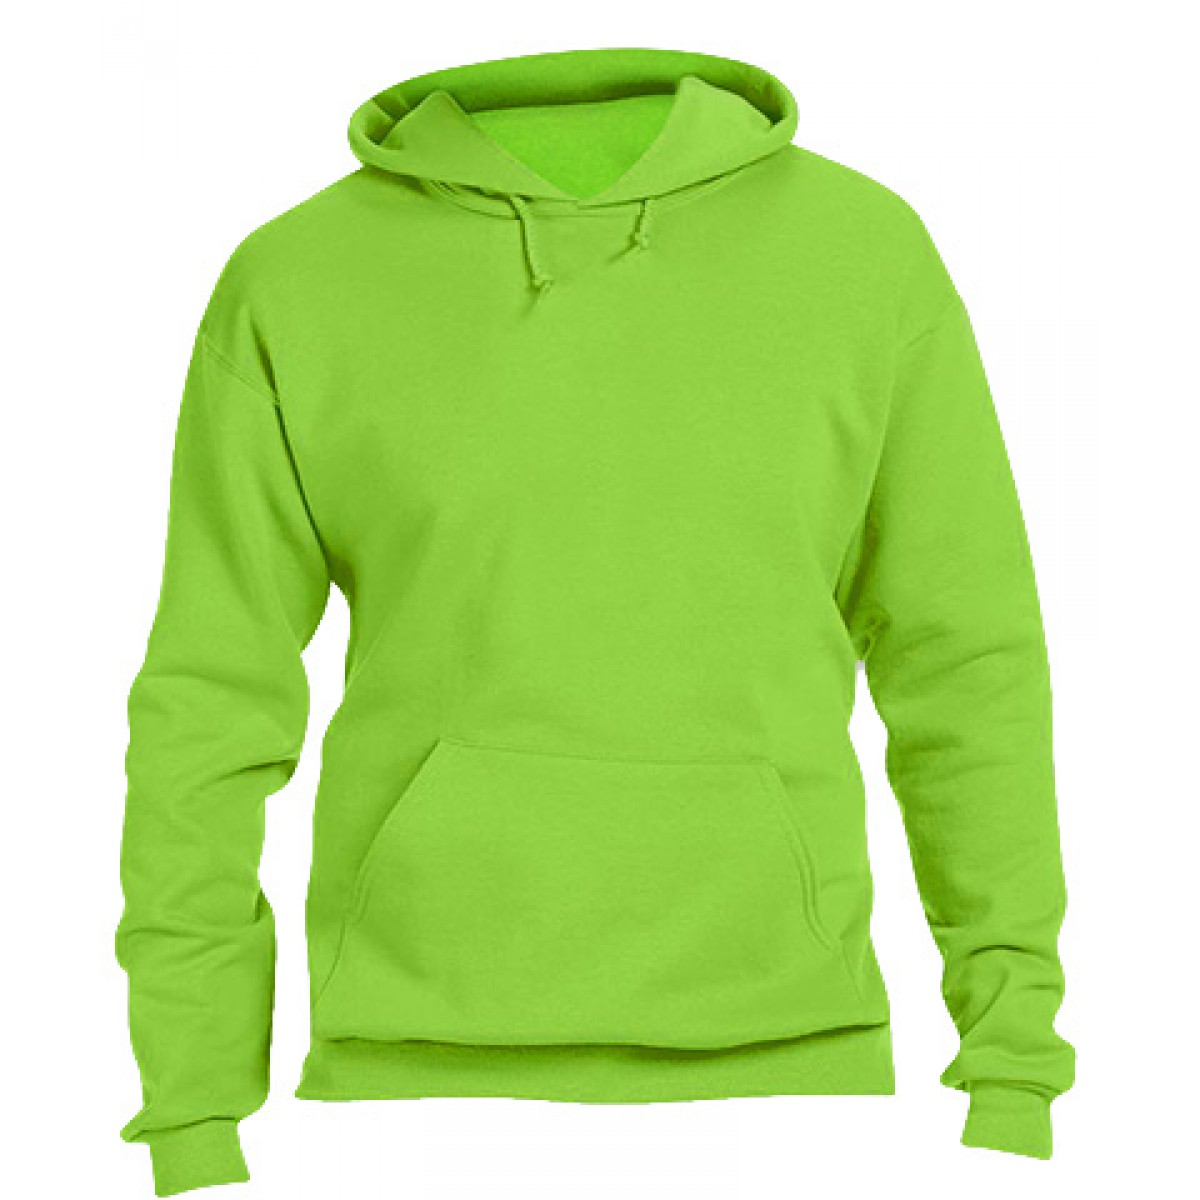 Hooded Sweatshirt 50/50 Heavy Blend -Neon Green-L